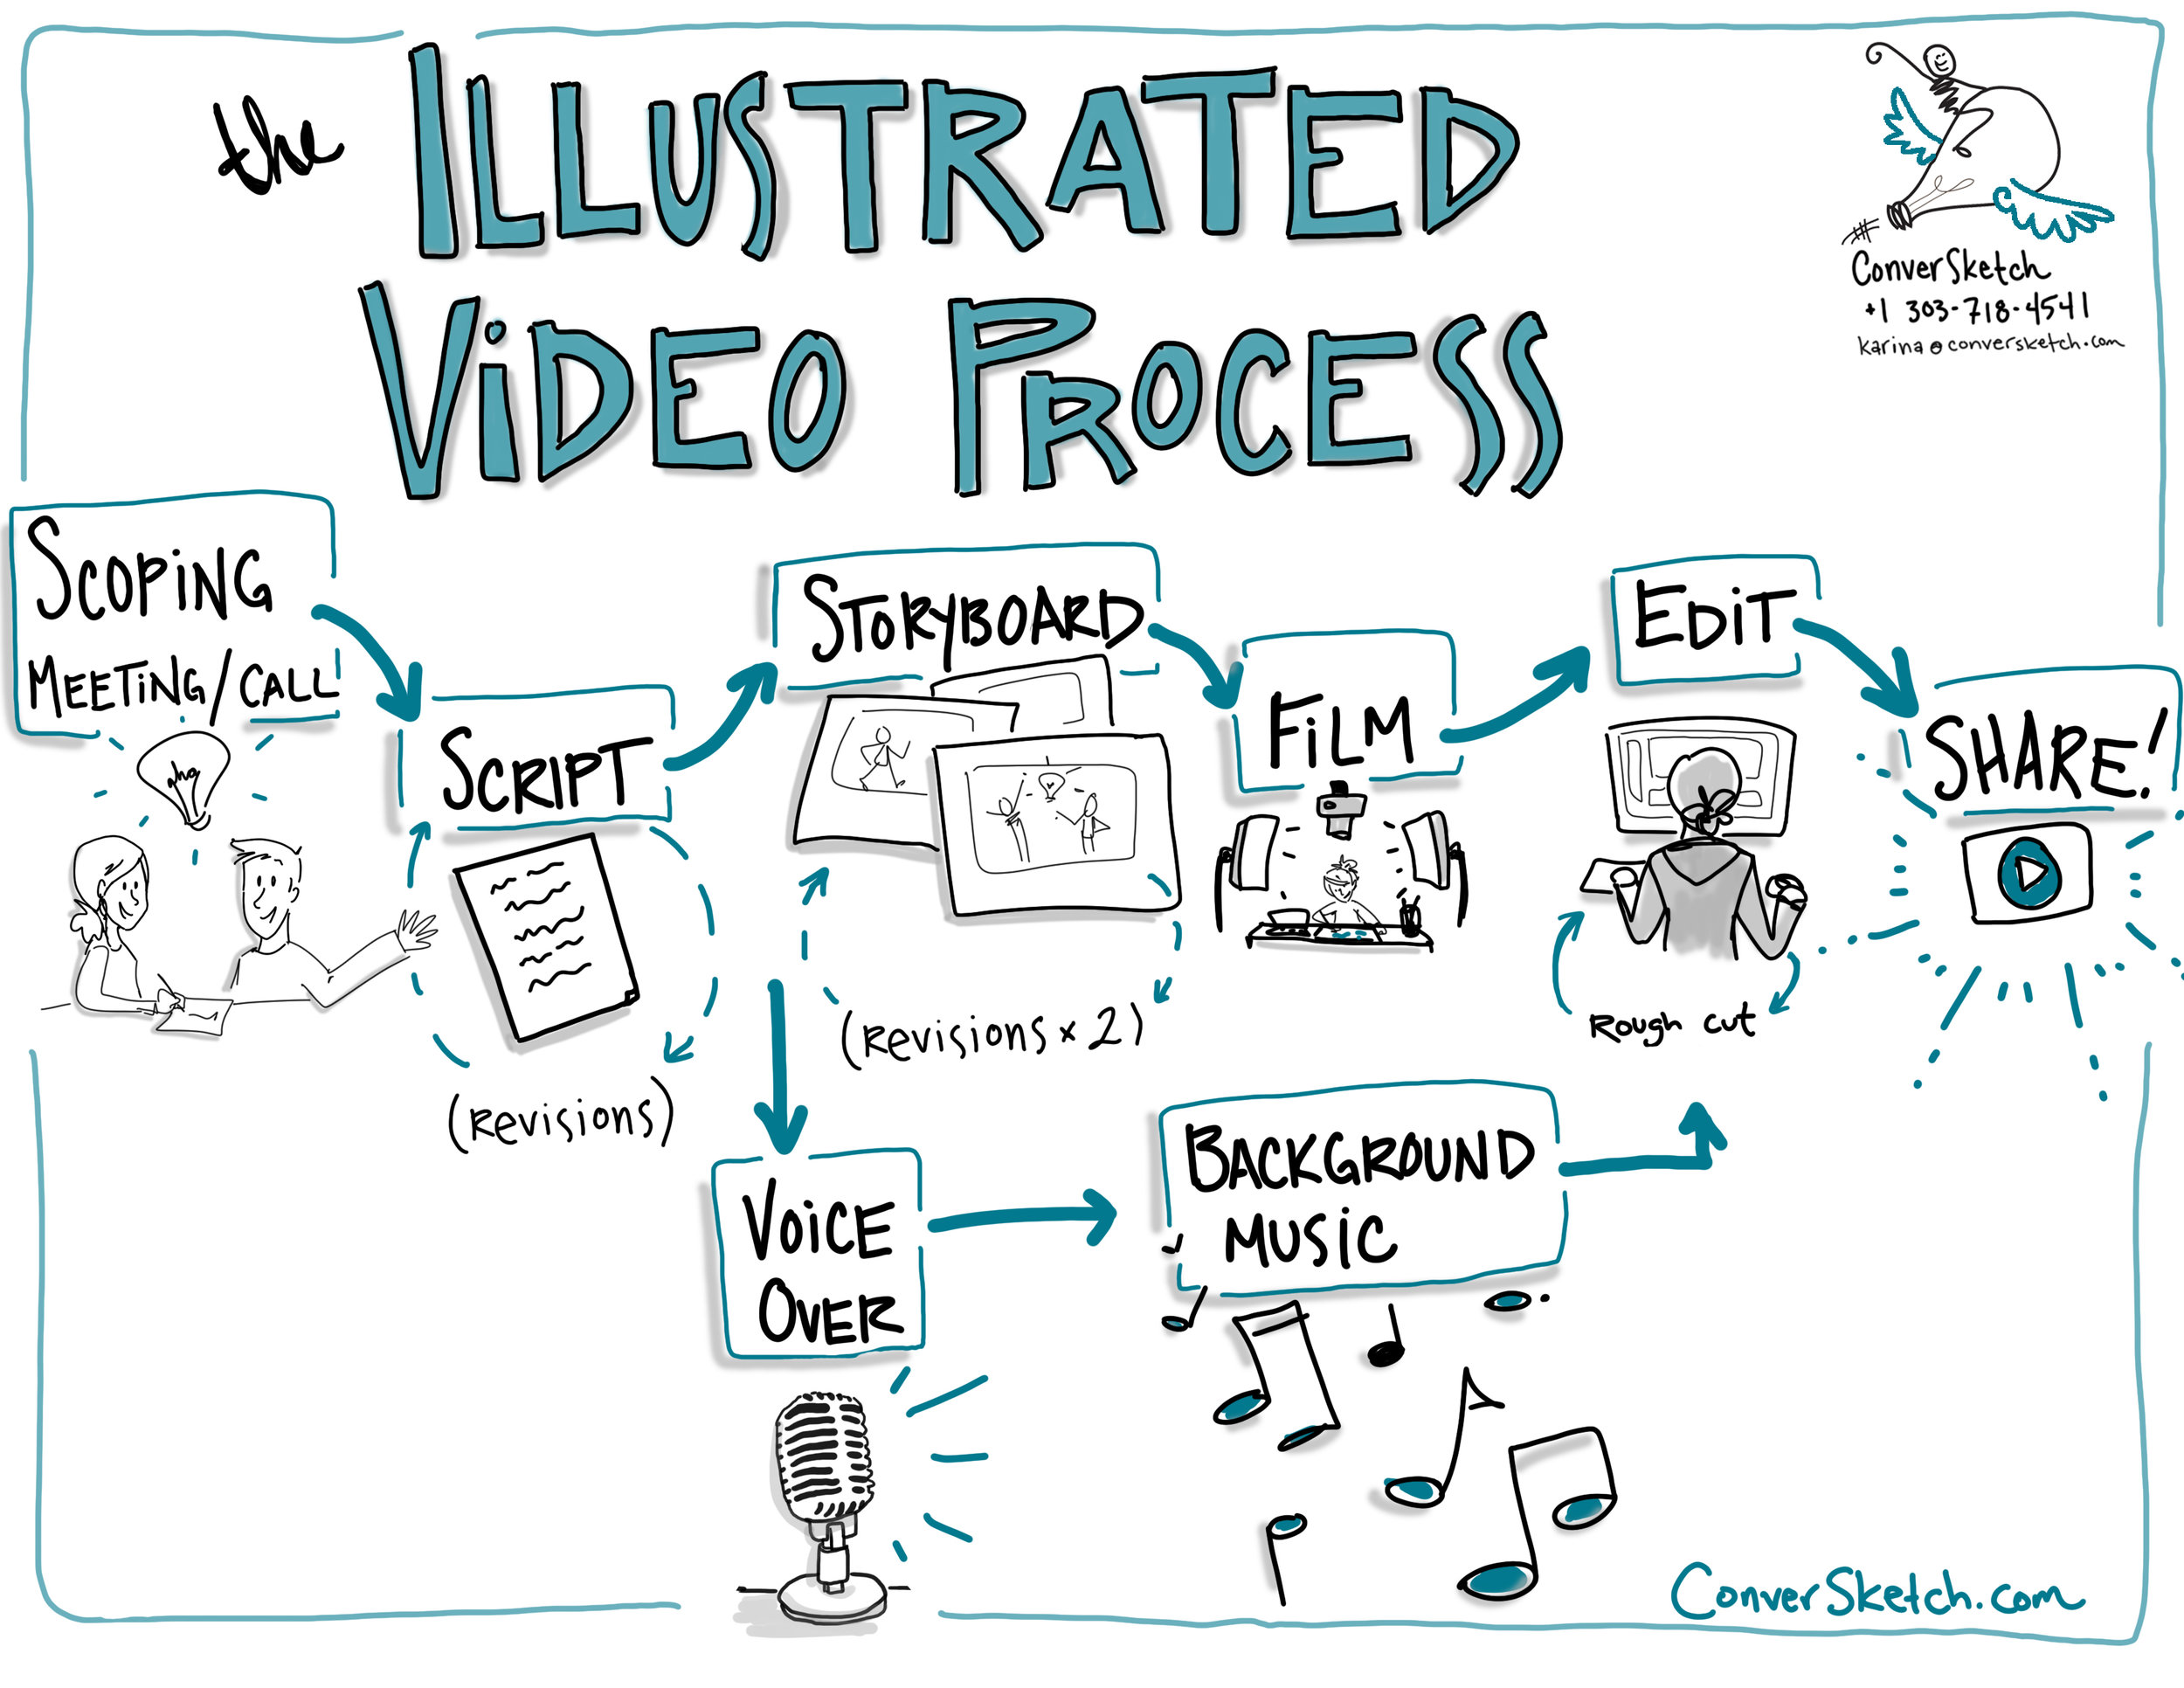 ConverSketch Illustrated Video Process